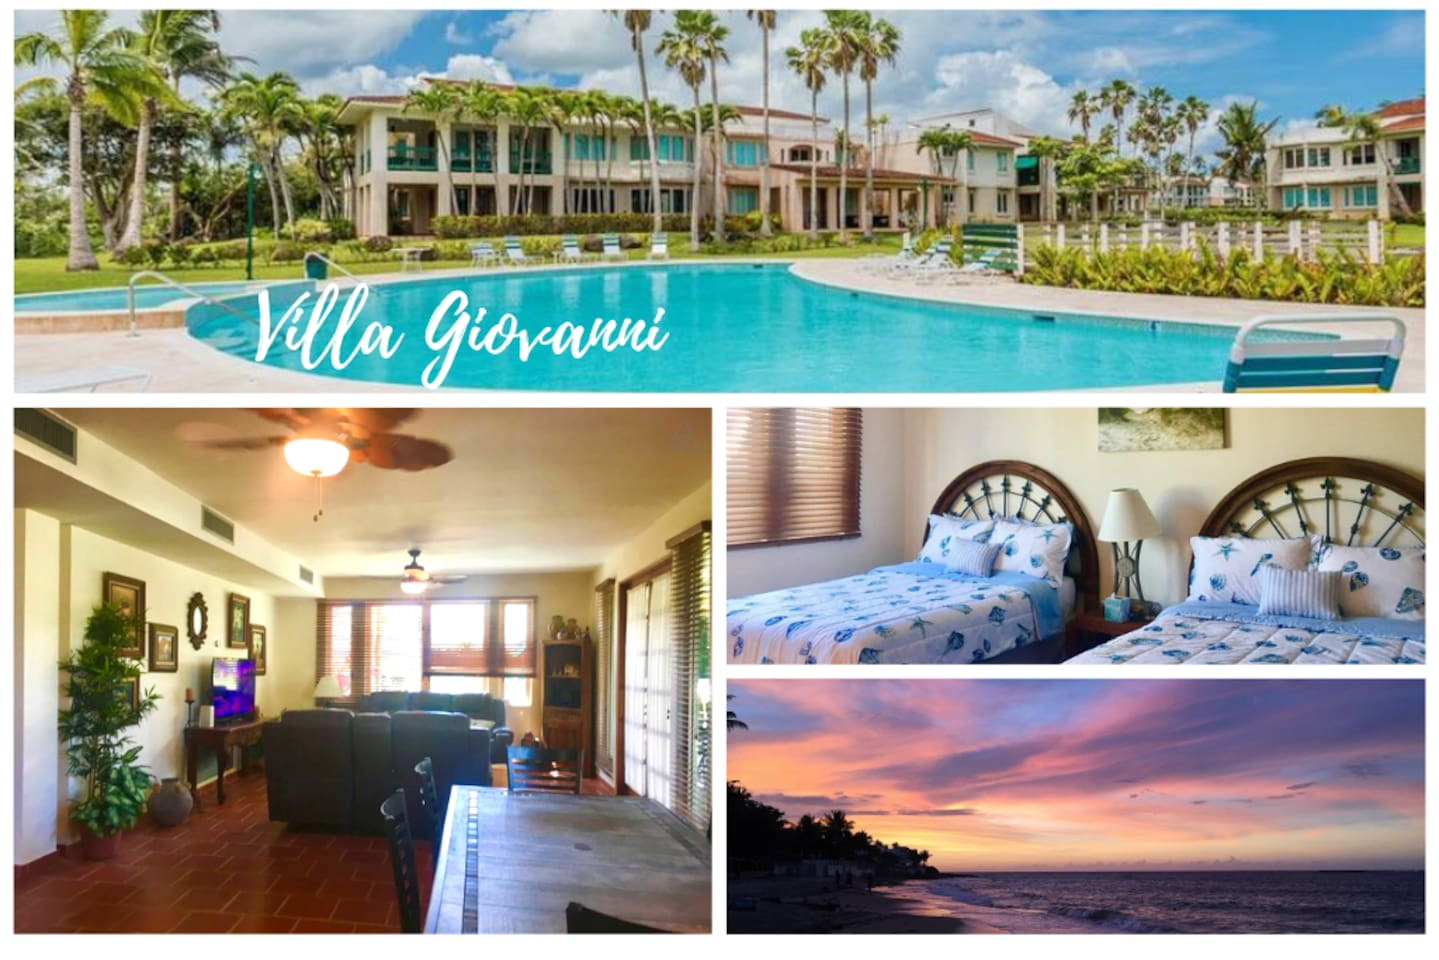 Villa Giovanni, in a beachfront gated community with 24-hour security, is a short one-minute walk from the Dorado area's fabulous beaches